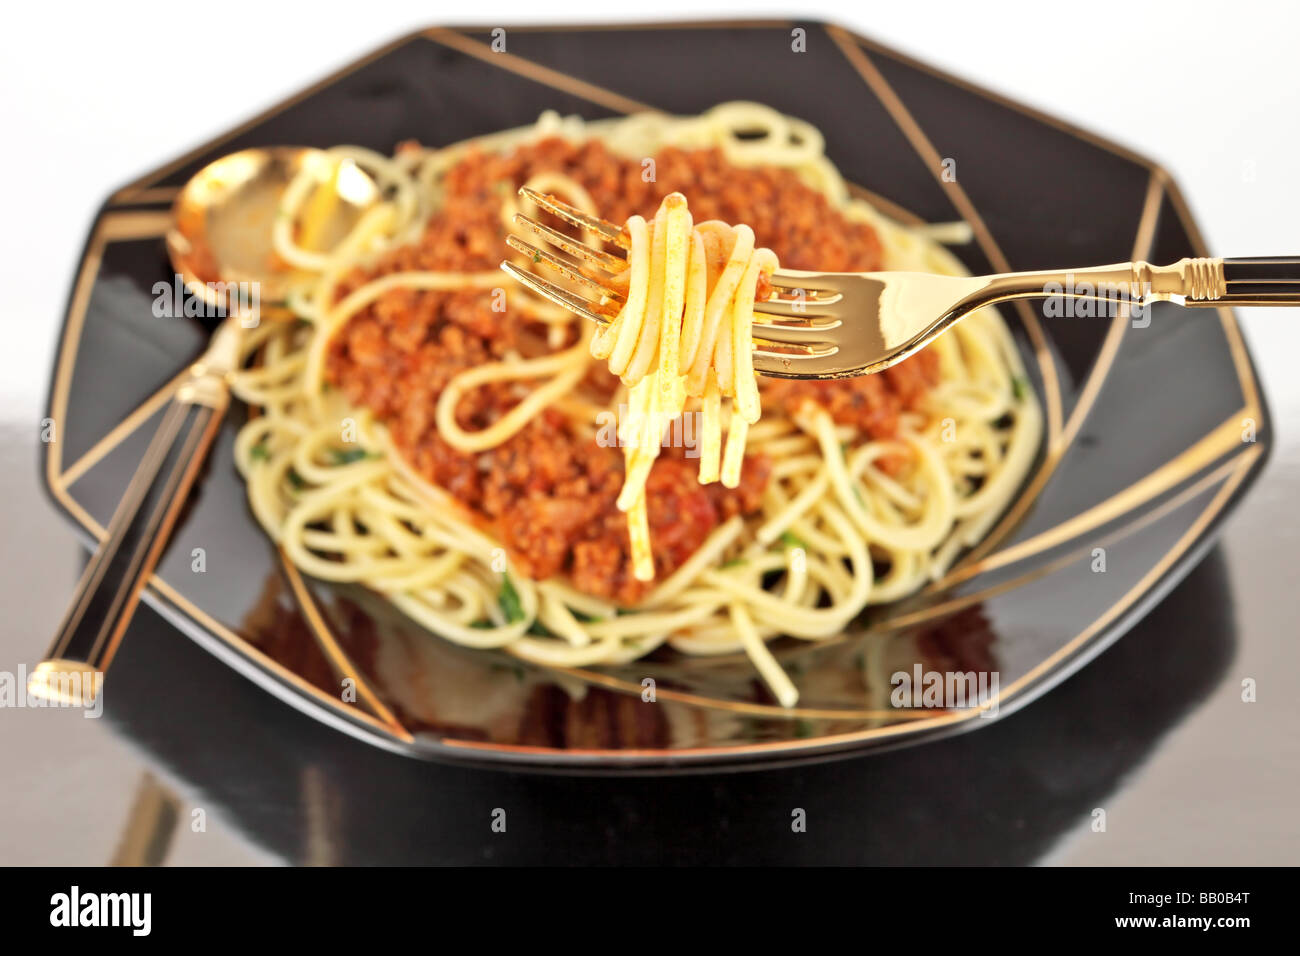 Meal of spaghetti bolognese european tradition - Stock Image